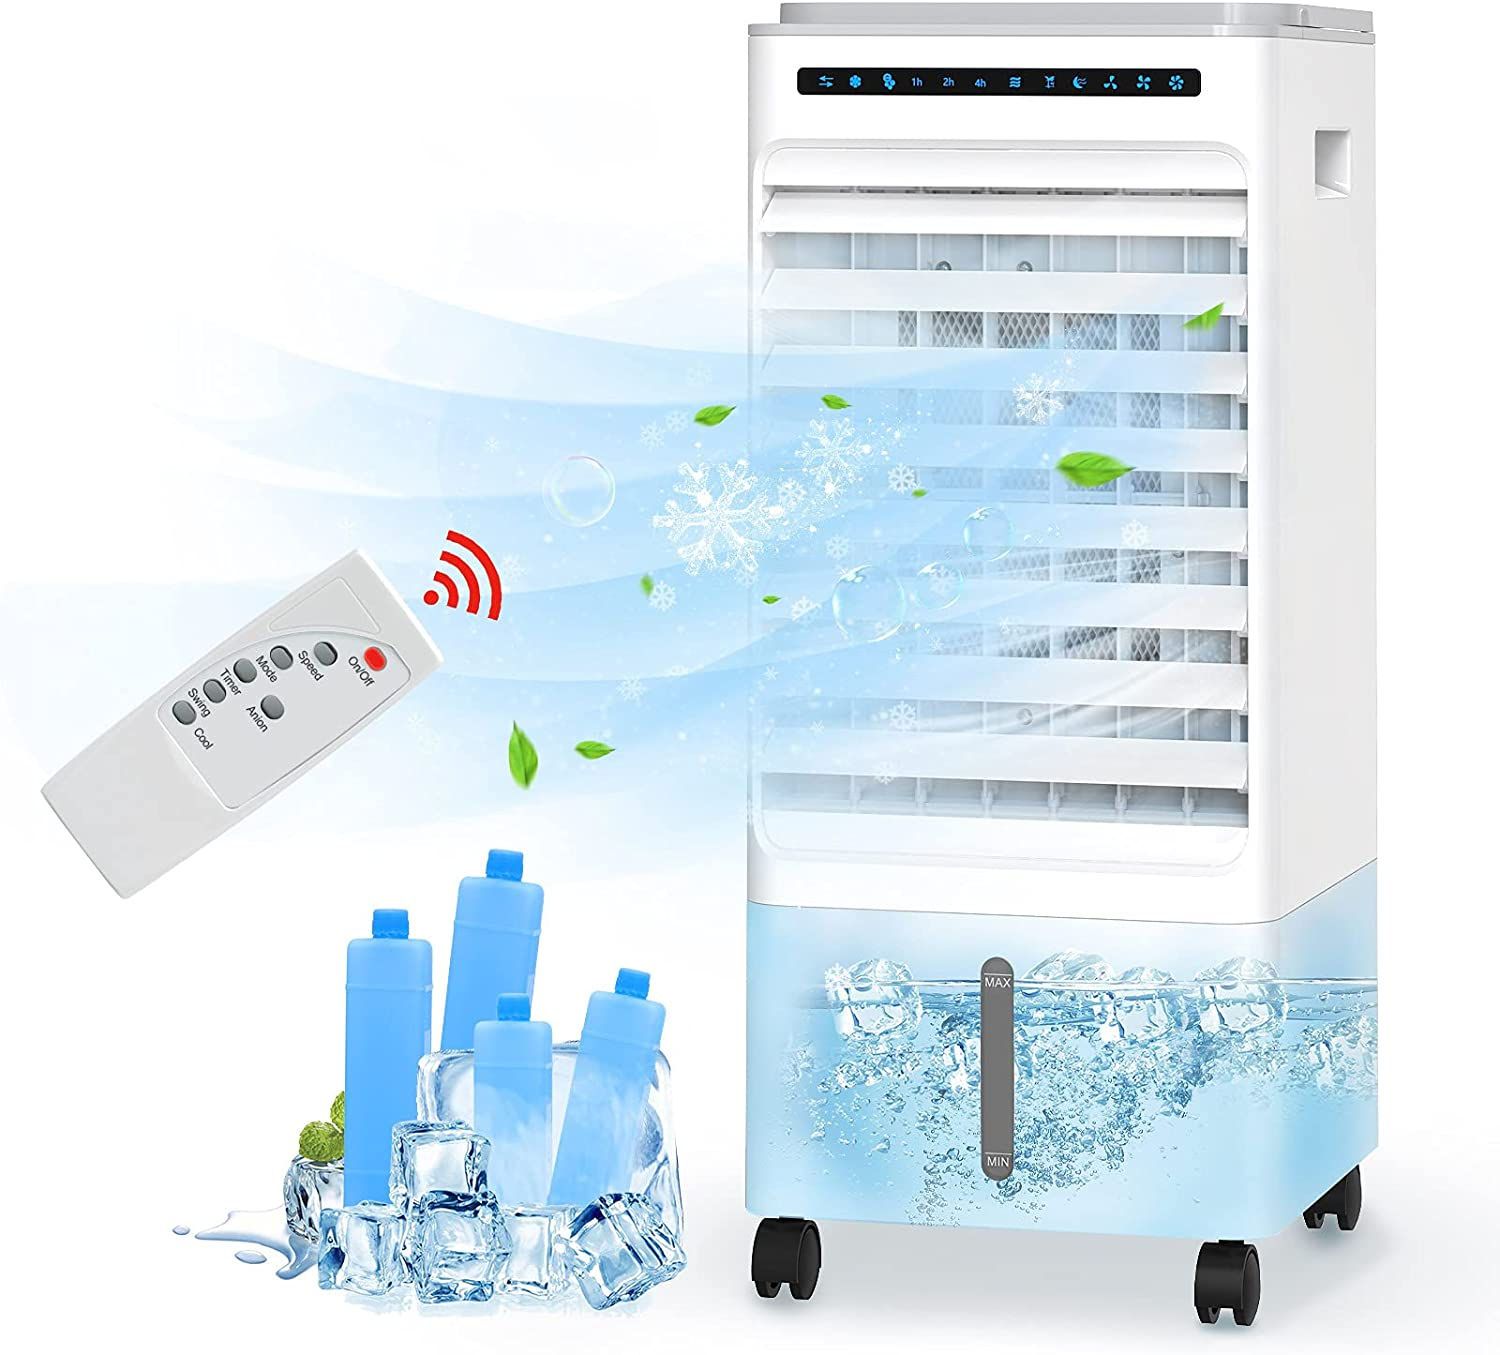 HAUEA Portable Air Conditioner 3-IN-1 Evaporative Air Cooler/ Cooling /Humification Portable Cooling Fan with 3 Speeds,90°Oscillation,7H Timer Remote Control & LED Display for Room Home Office